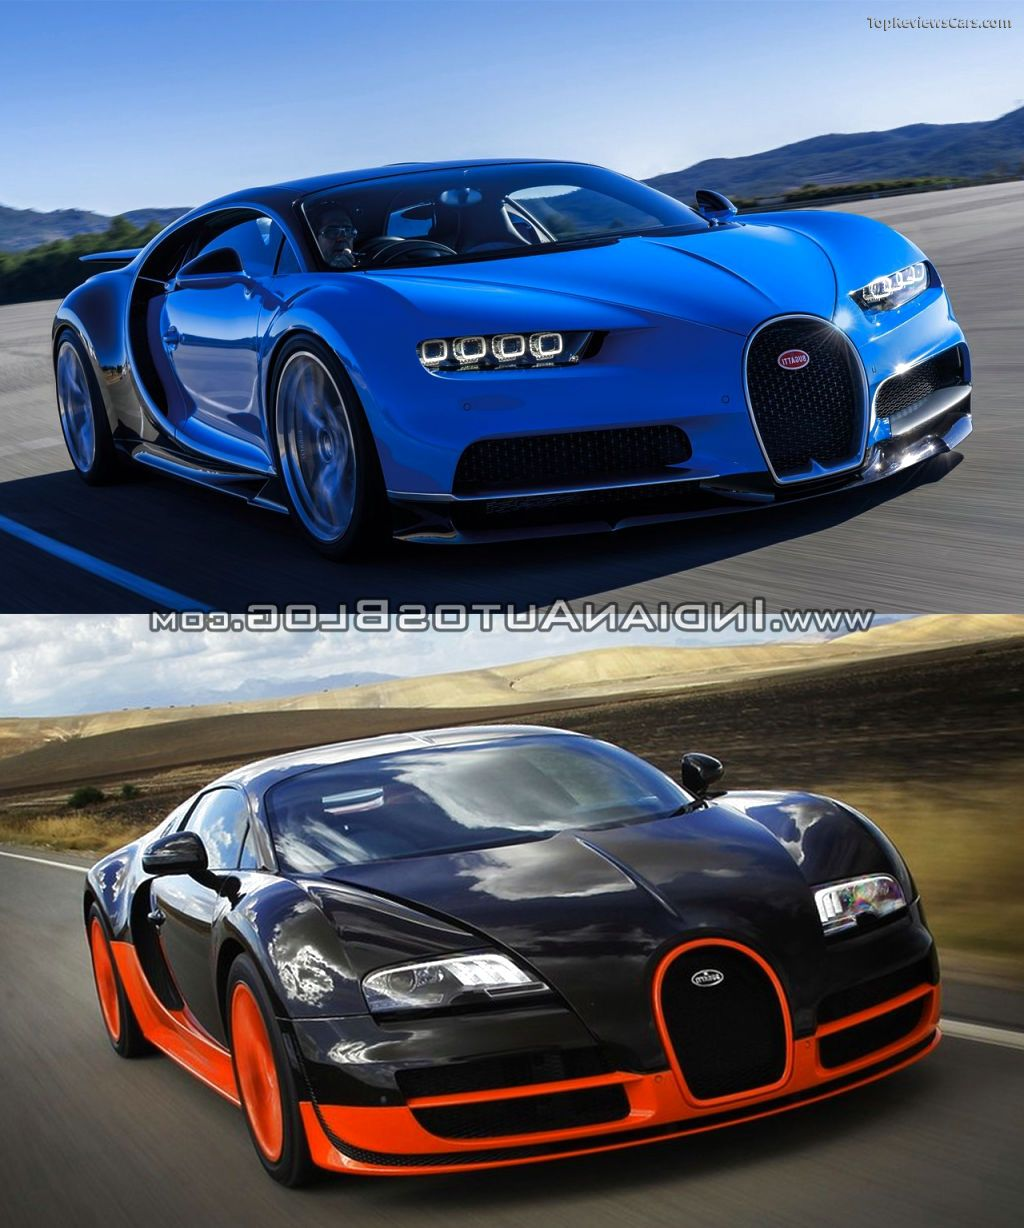 2020 Bugatti Chiron Grand Sport Cool Design Wallpaper Wide Image